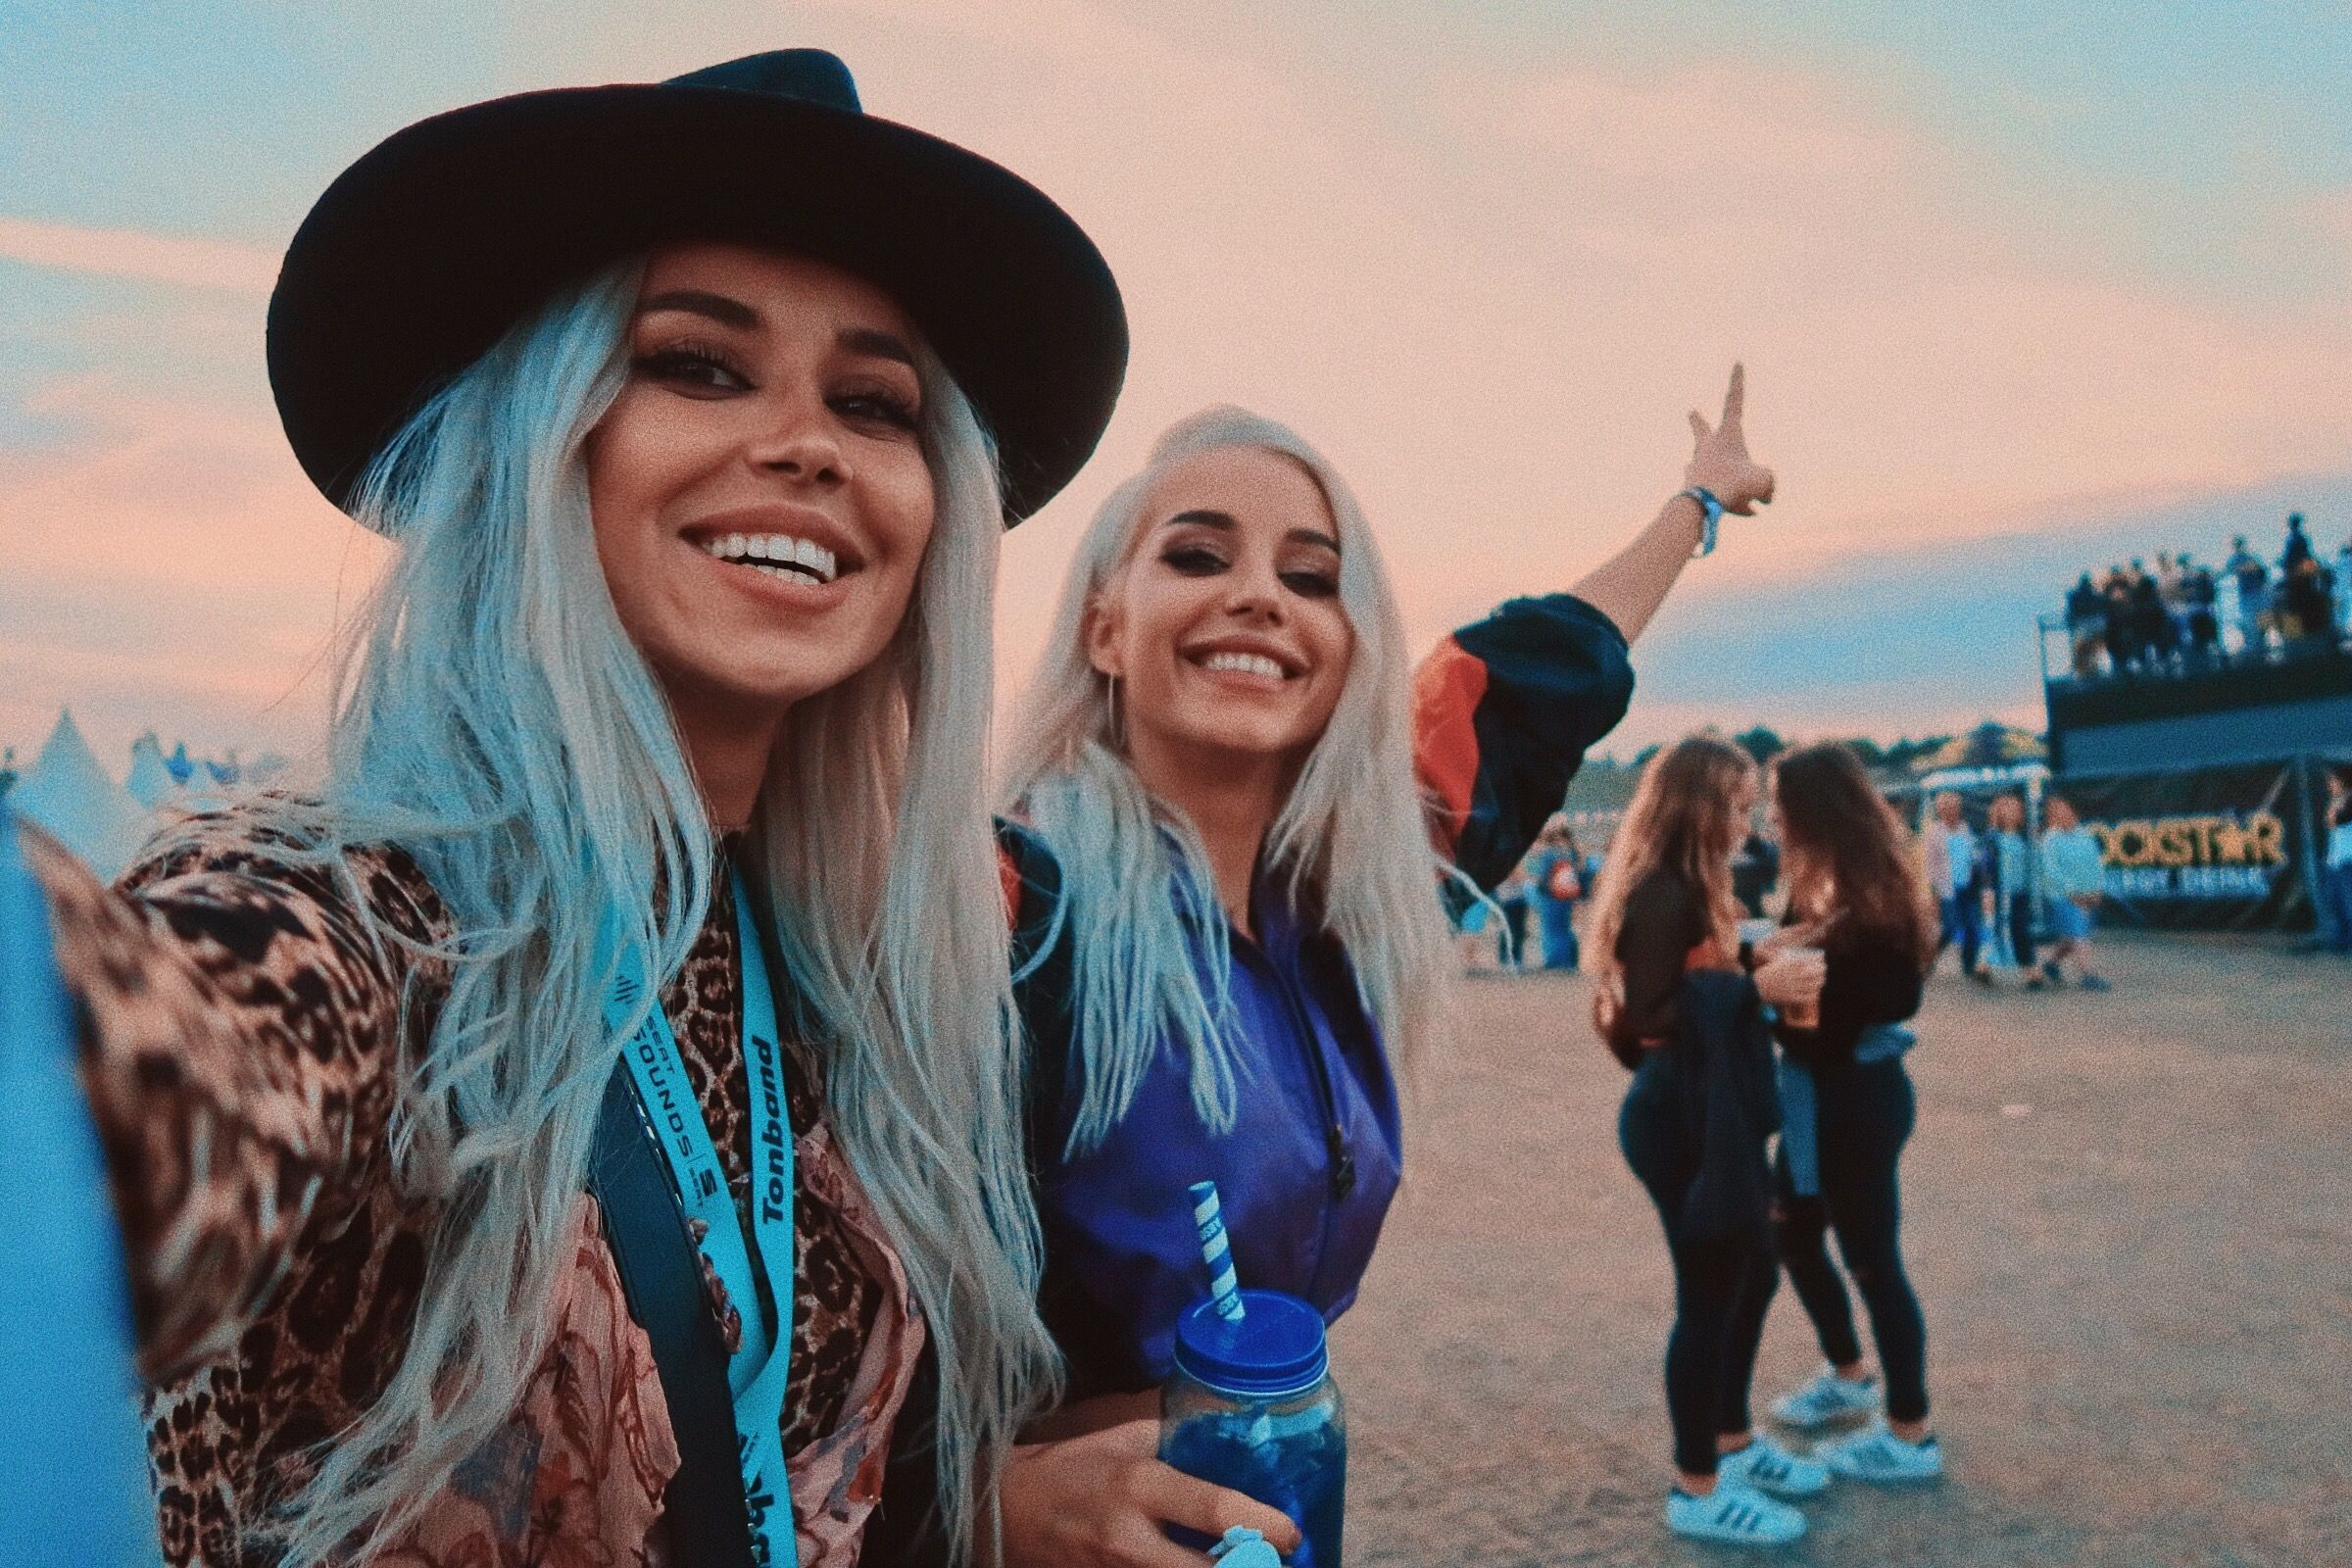 #TravelWhereTheMusicTakesYou: Lollapalooza, The Weeknd, 24h in Berlin.